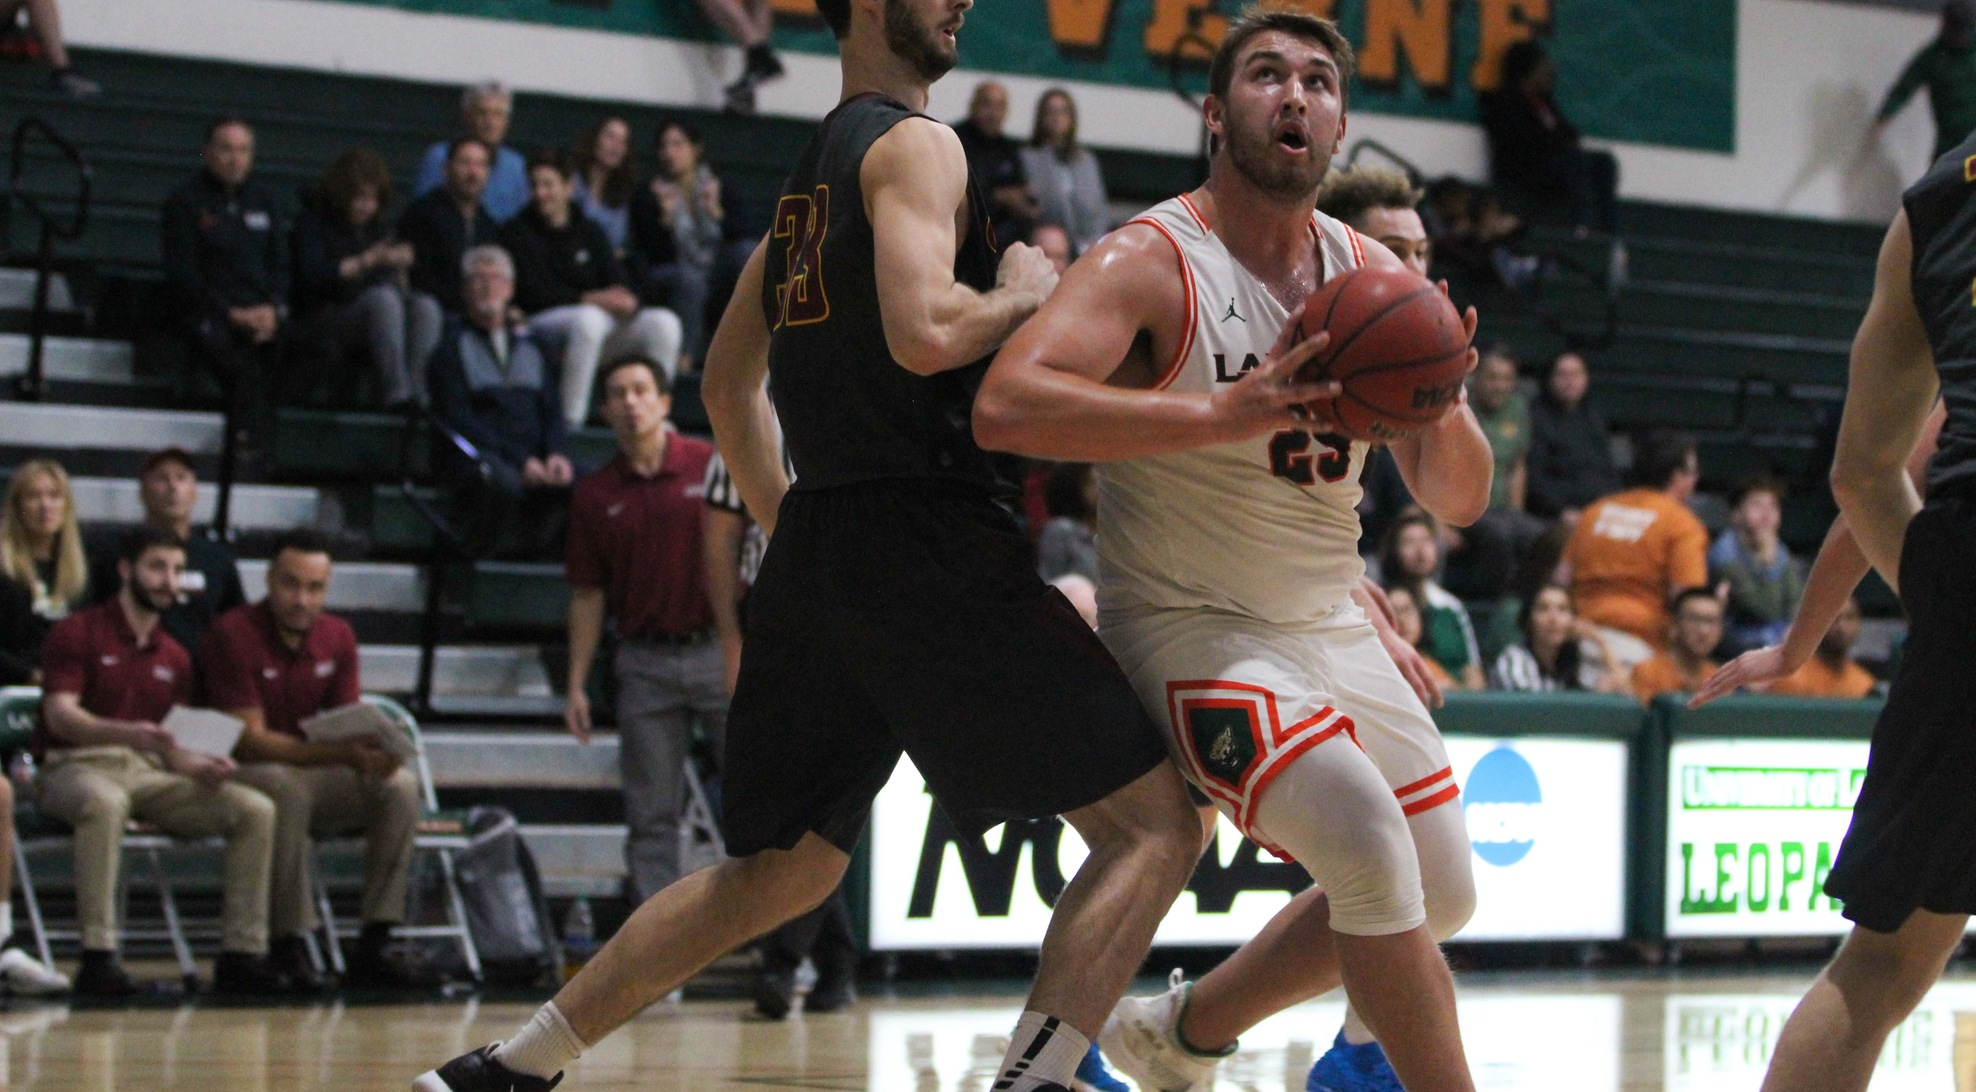 Men's Basketball falls to Linfield on the road